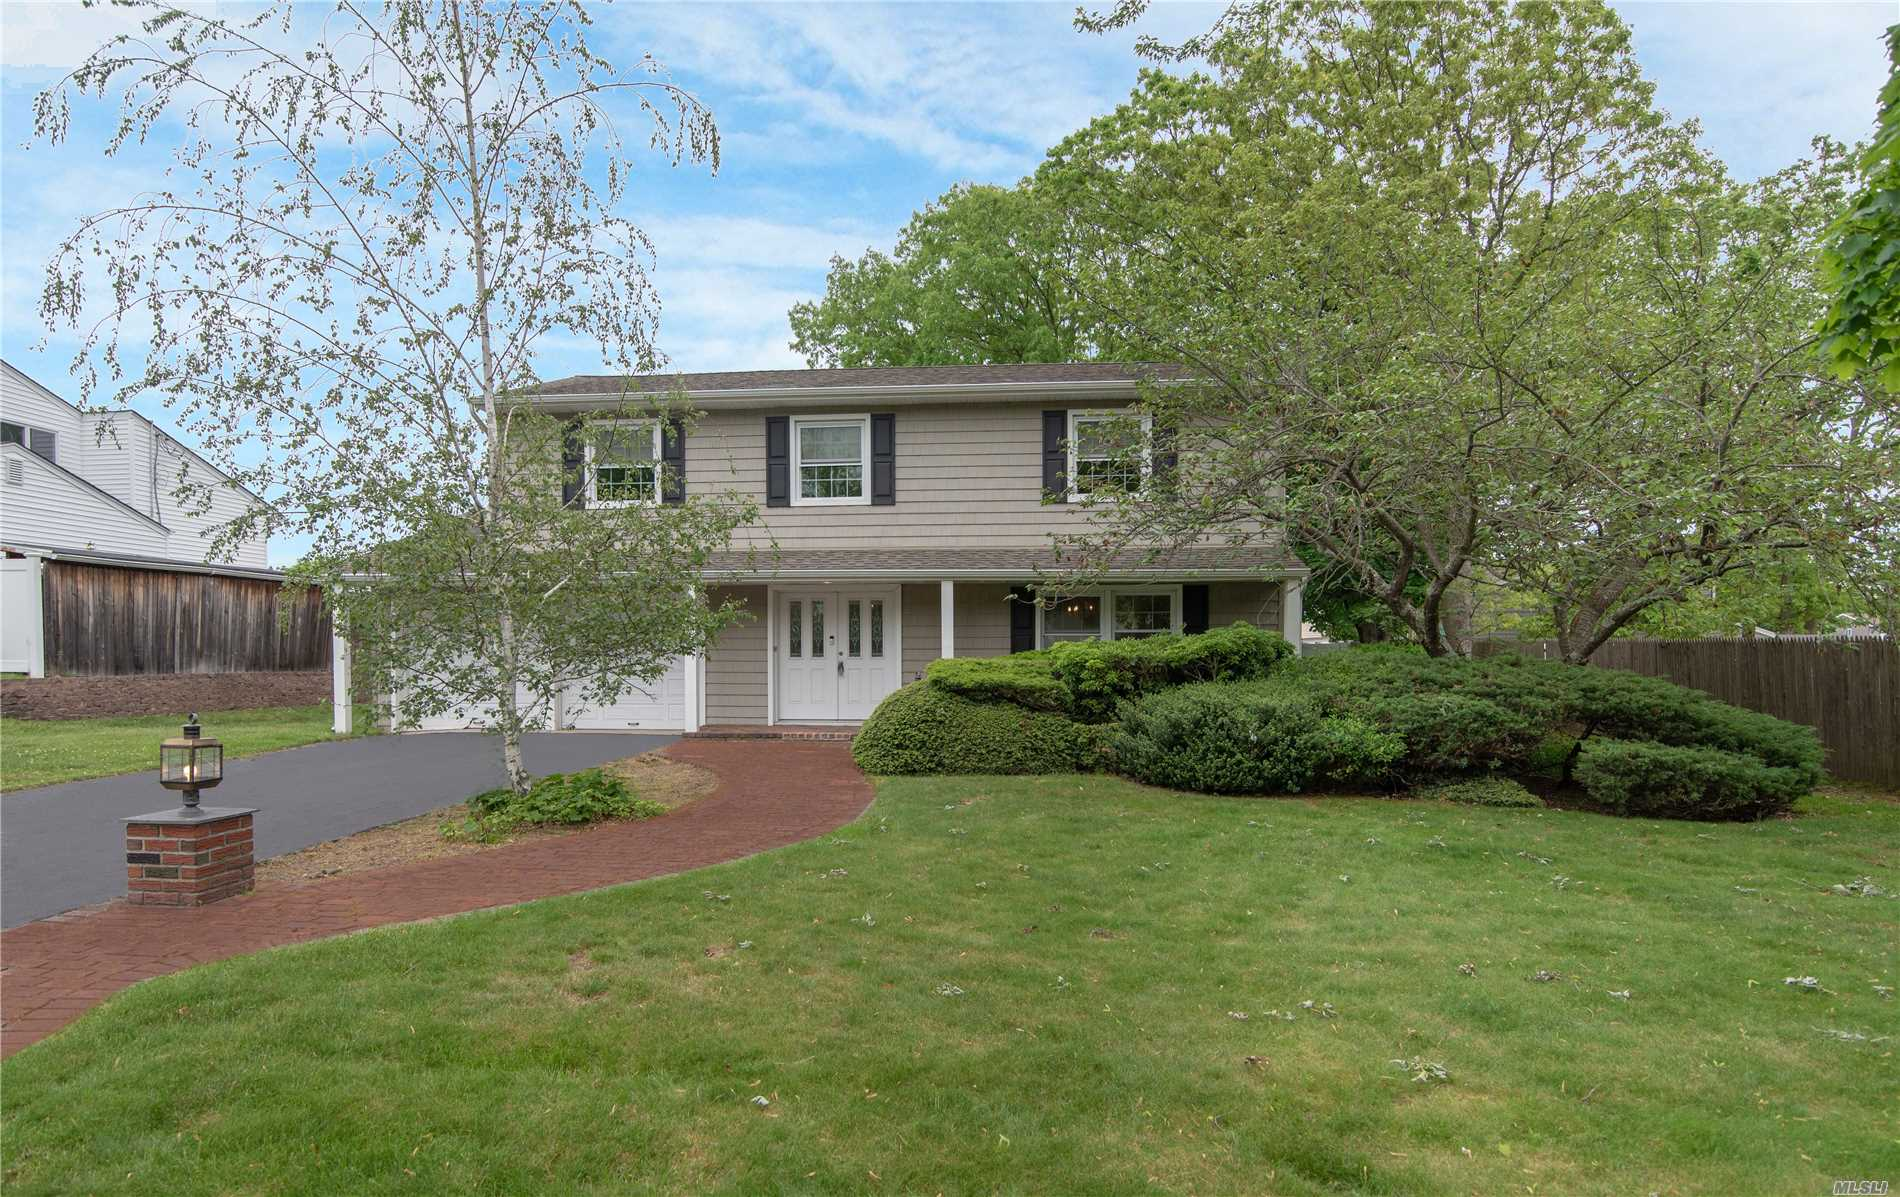 MANY UPGRADED FEATURES IN THIS SPLANCH STYLE HOME IN SMITHTOWN SD, NEWER EAT IN KITCHEN W/SS APPL & GRANITE, NEWER WINDOWS & DOORS, NEW ROOF & SIDING, NEW RUGS, HARDWOOD FLRS UNDER RUGS, FRESHLY PAINTED, 2 NEW BATHS, OIL TANK IS OUTSIDE ABOVE GROUND